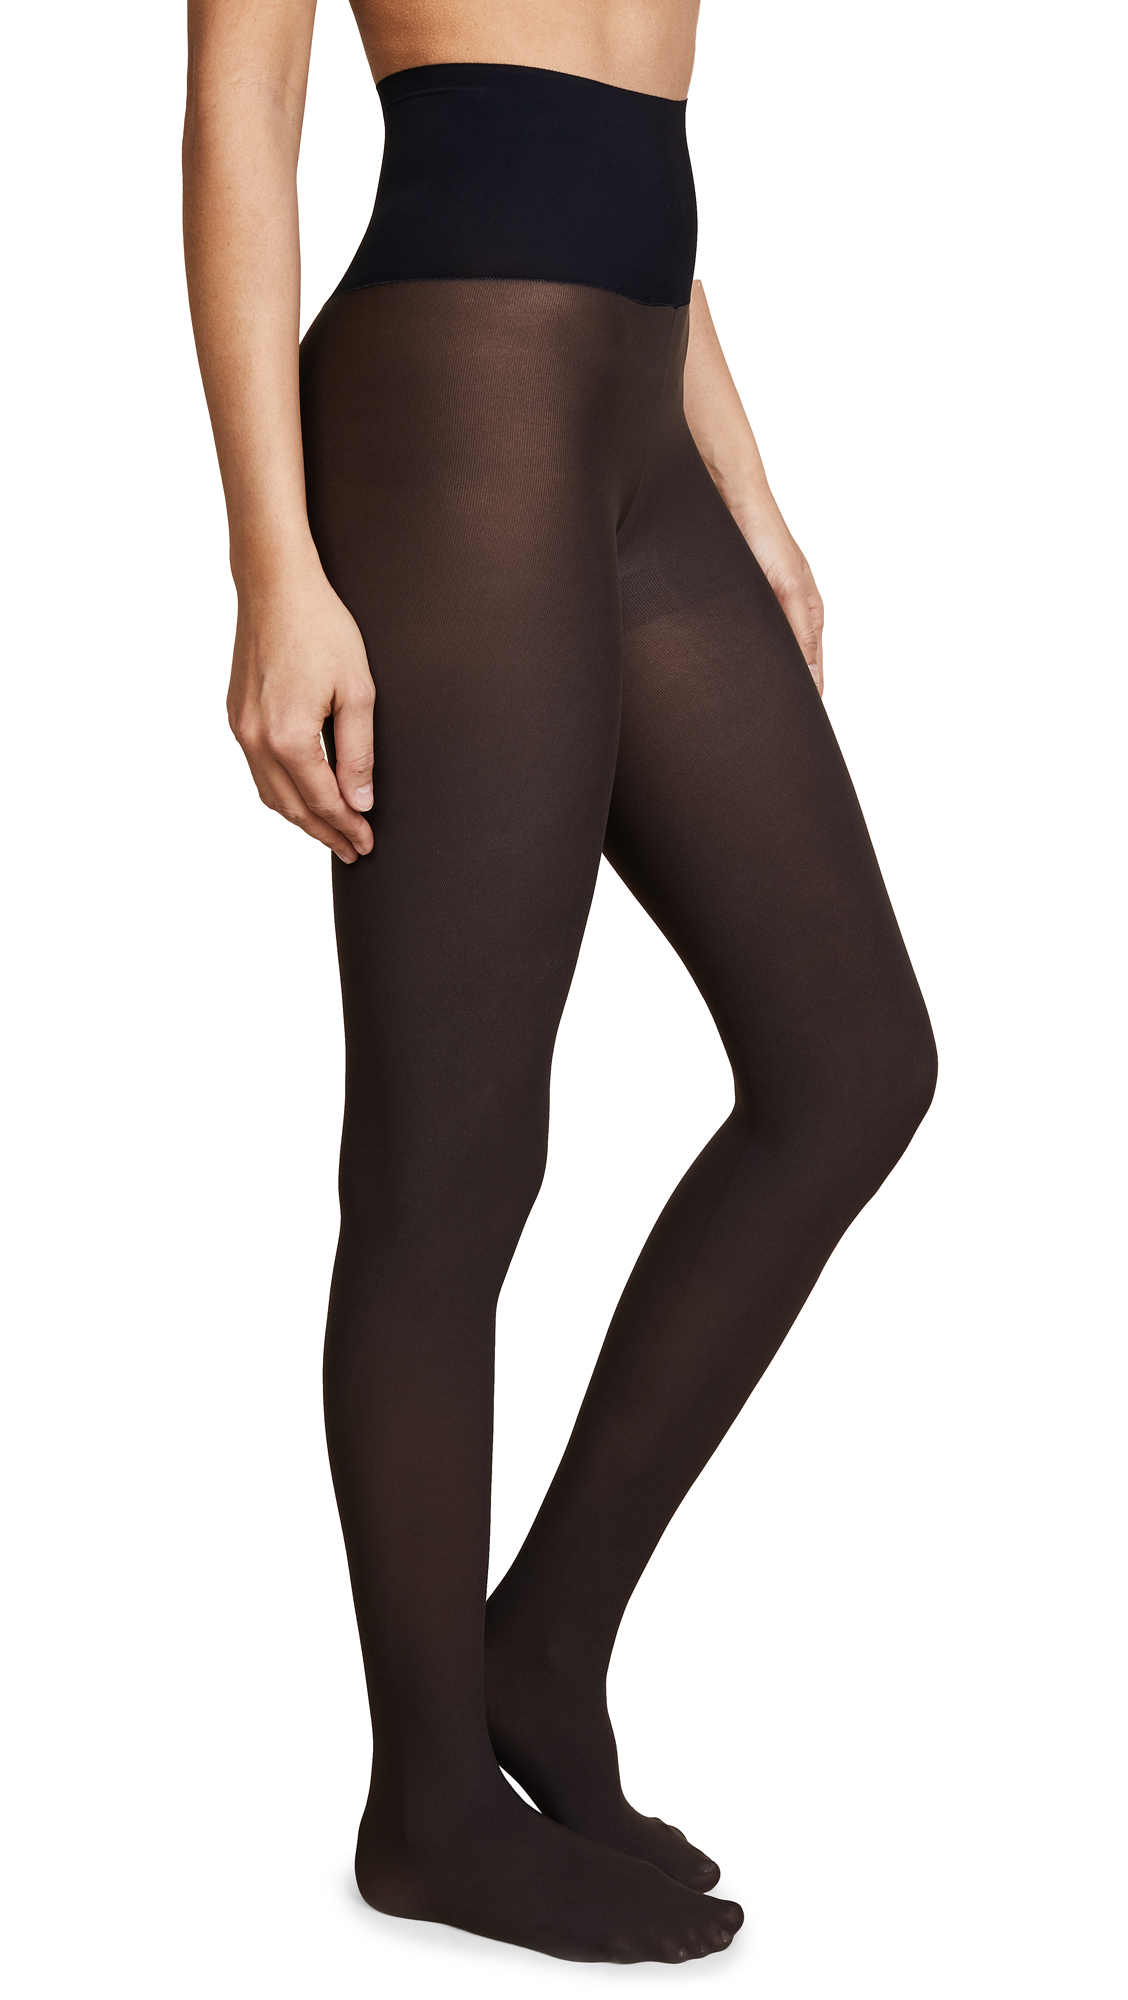 pics Commando tights review: Are they worth the cost